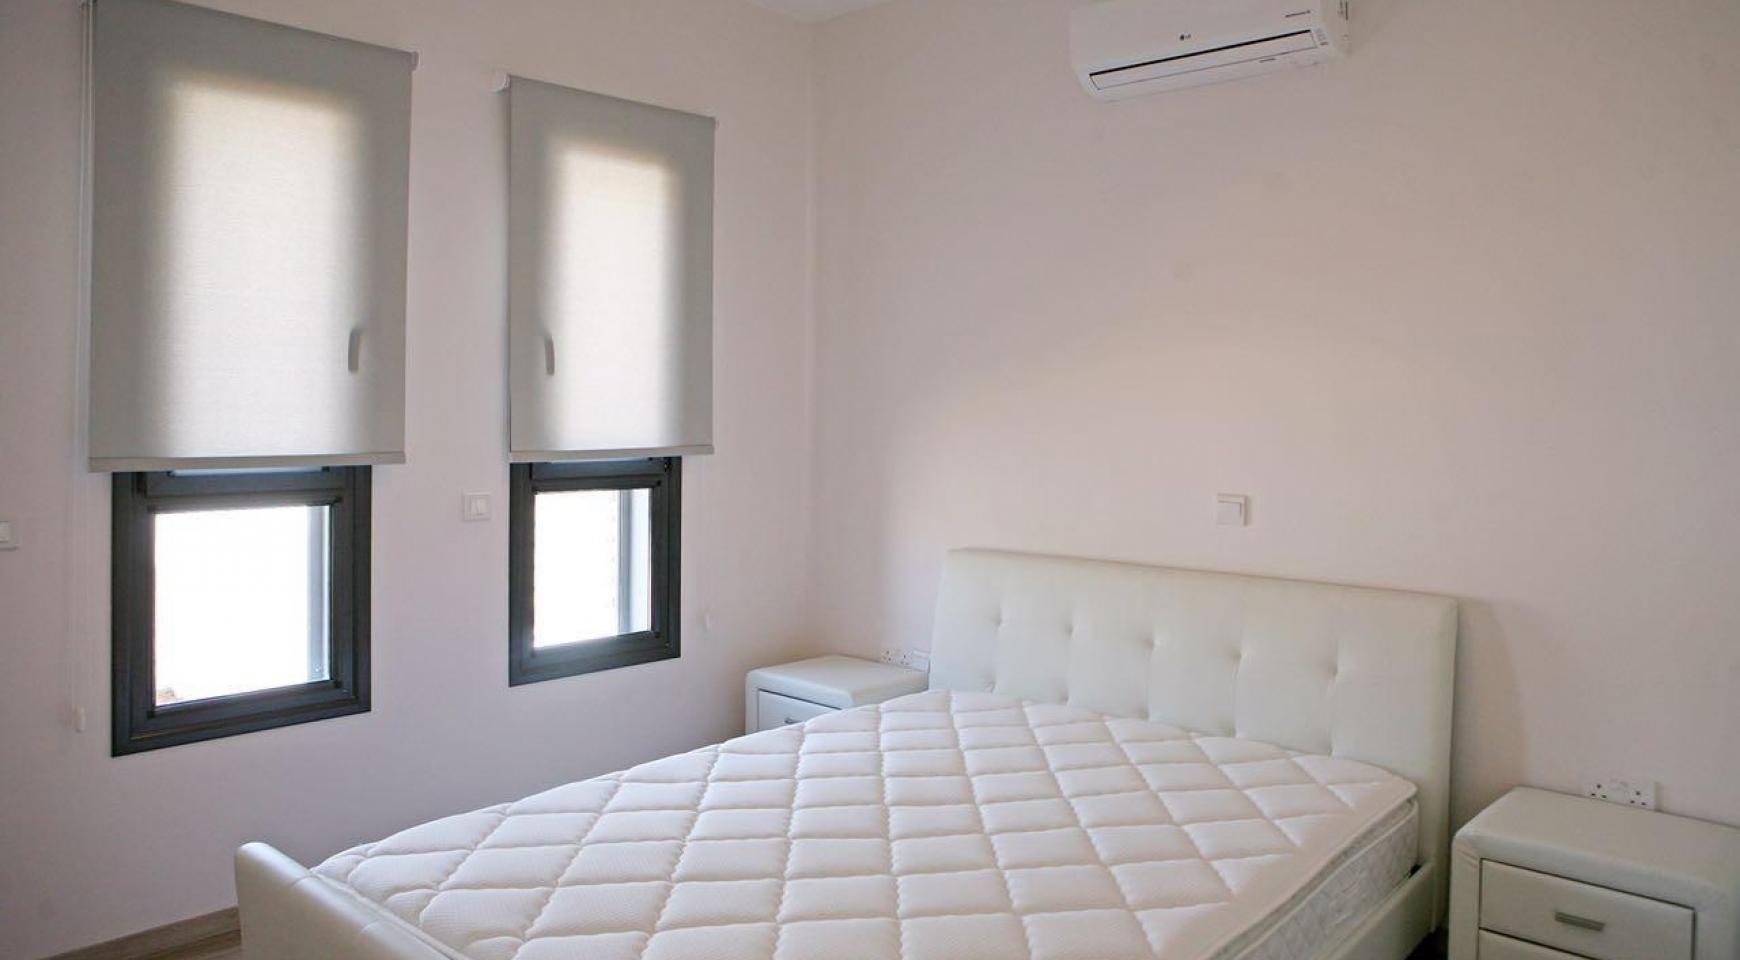 New Contemporary 3 Bedroom House in Central Location - 11